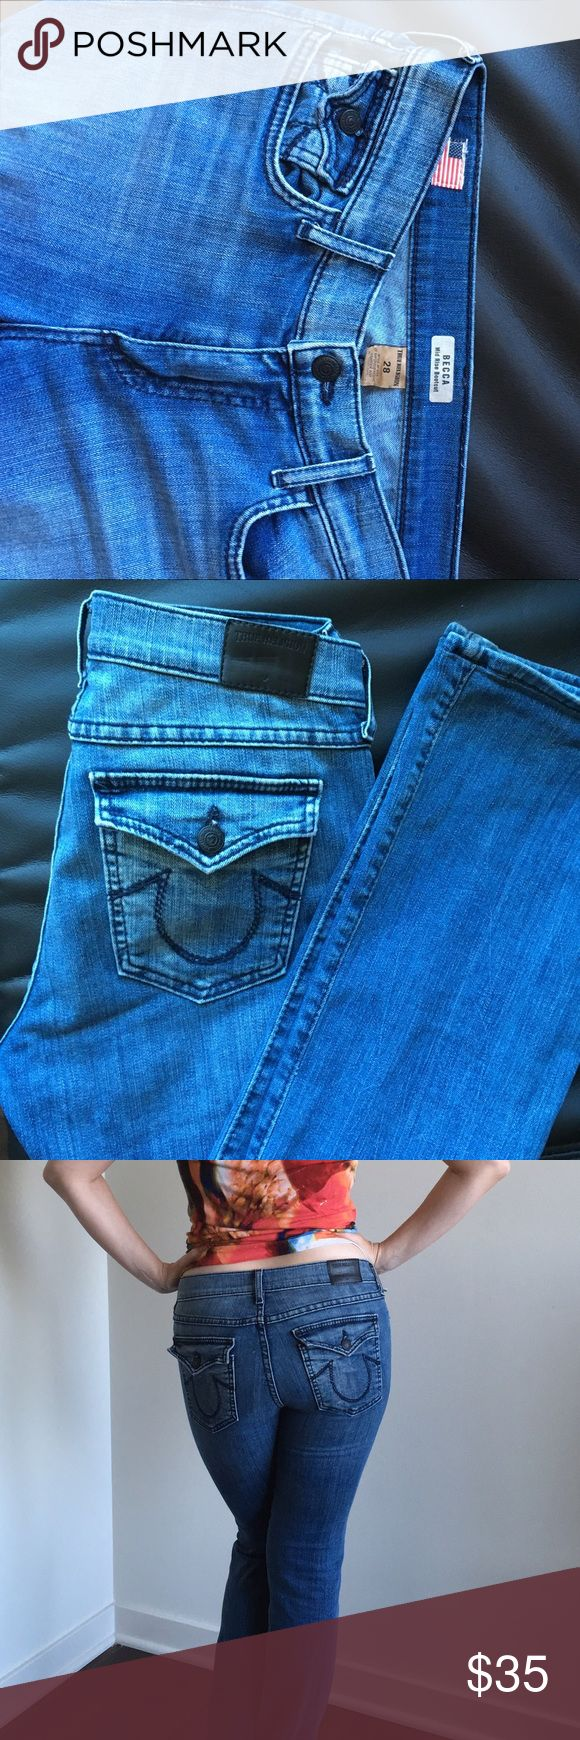 🔥Sale🔥True religion jeans Becca mid rise bootcut , light blue . Perfect for summer and shows your curve the most. Size 28. Made in USA. In excellent condition. True Religion Jeans Boot Cut